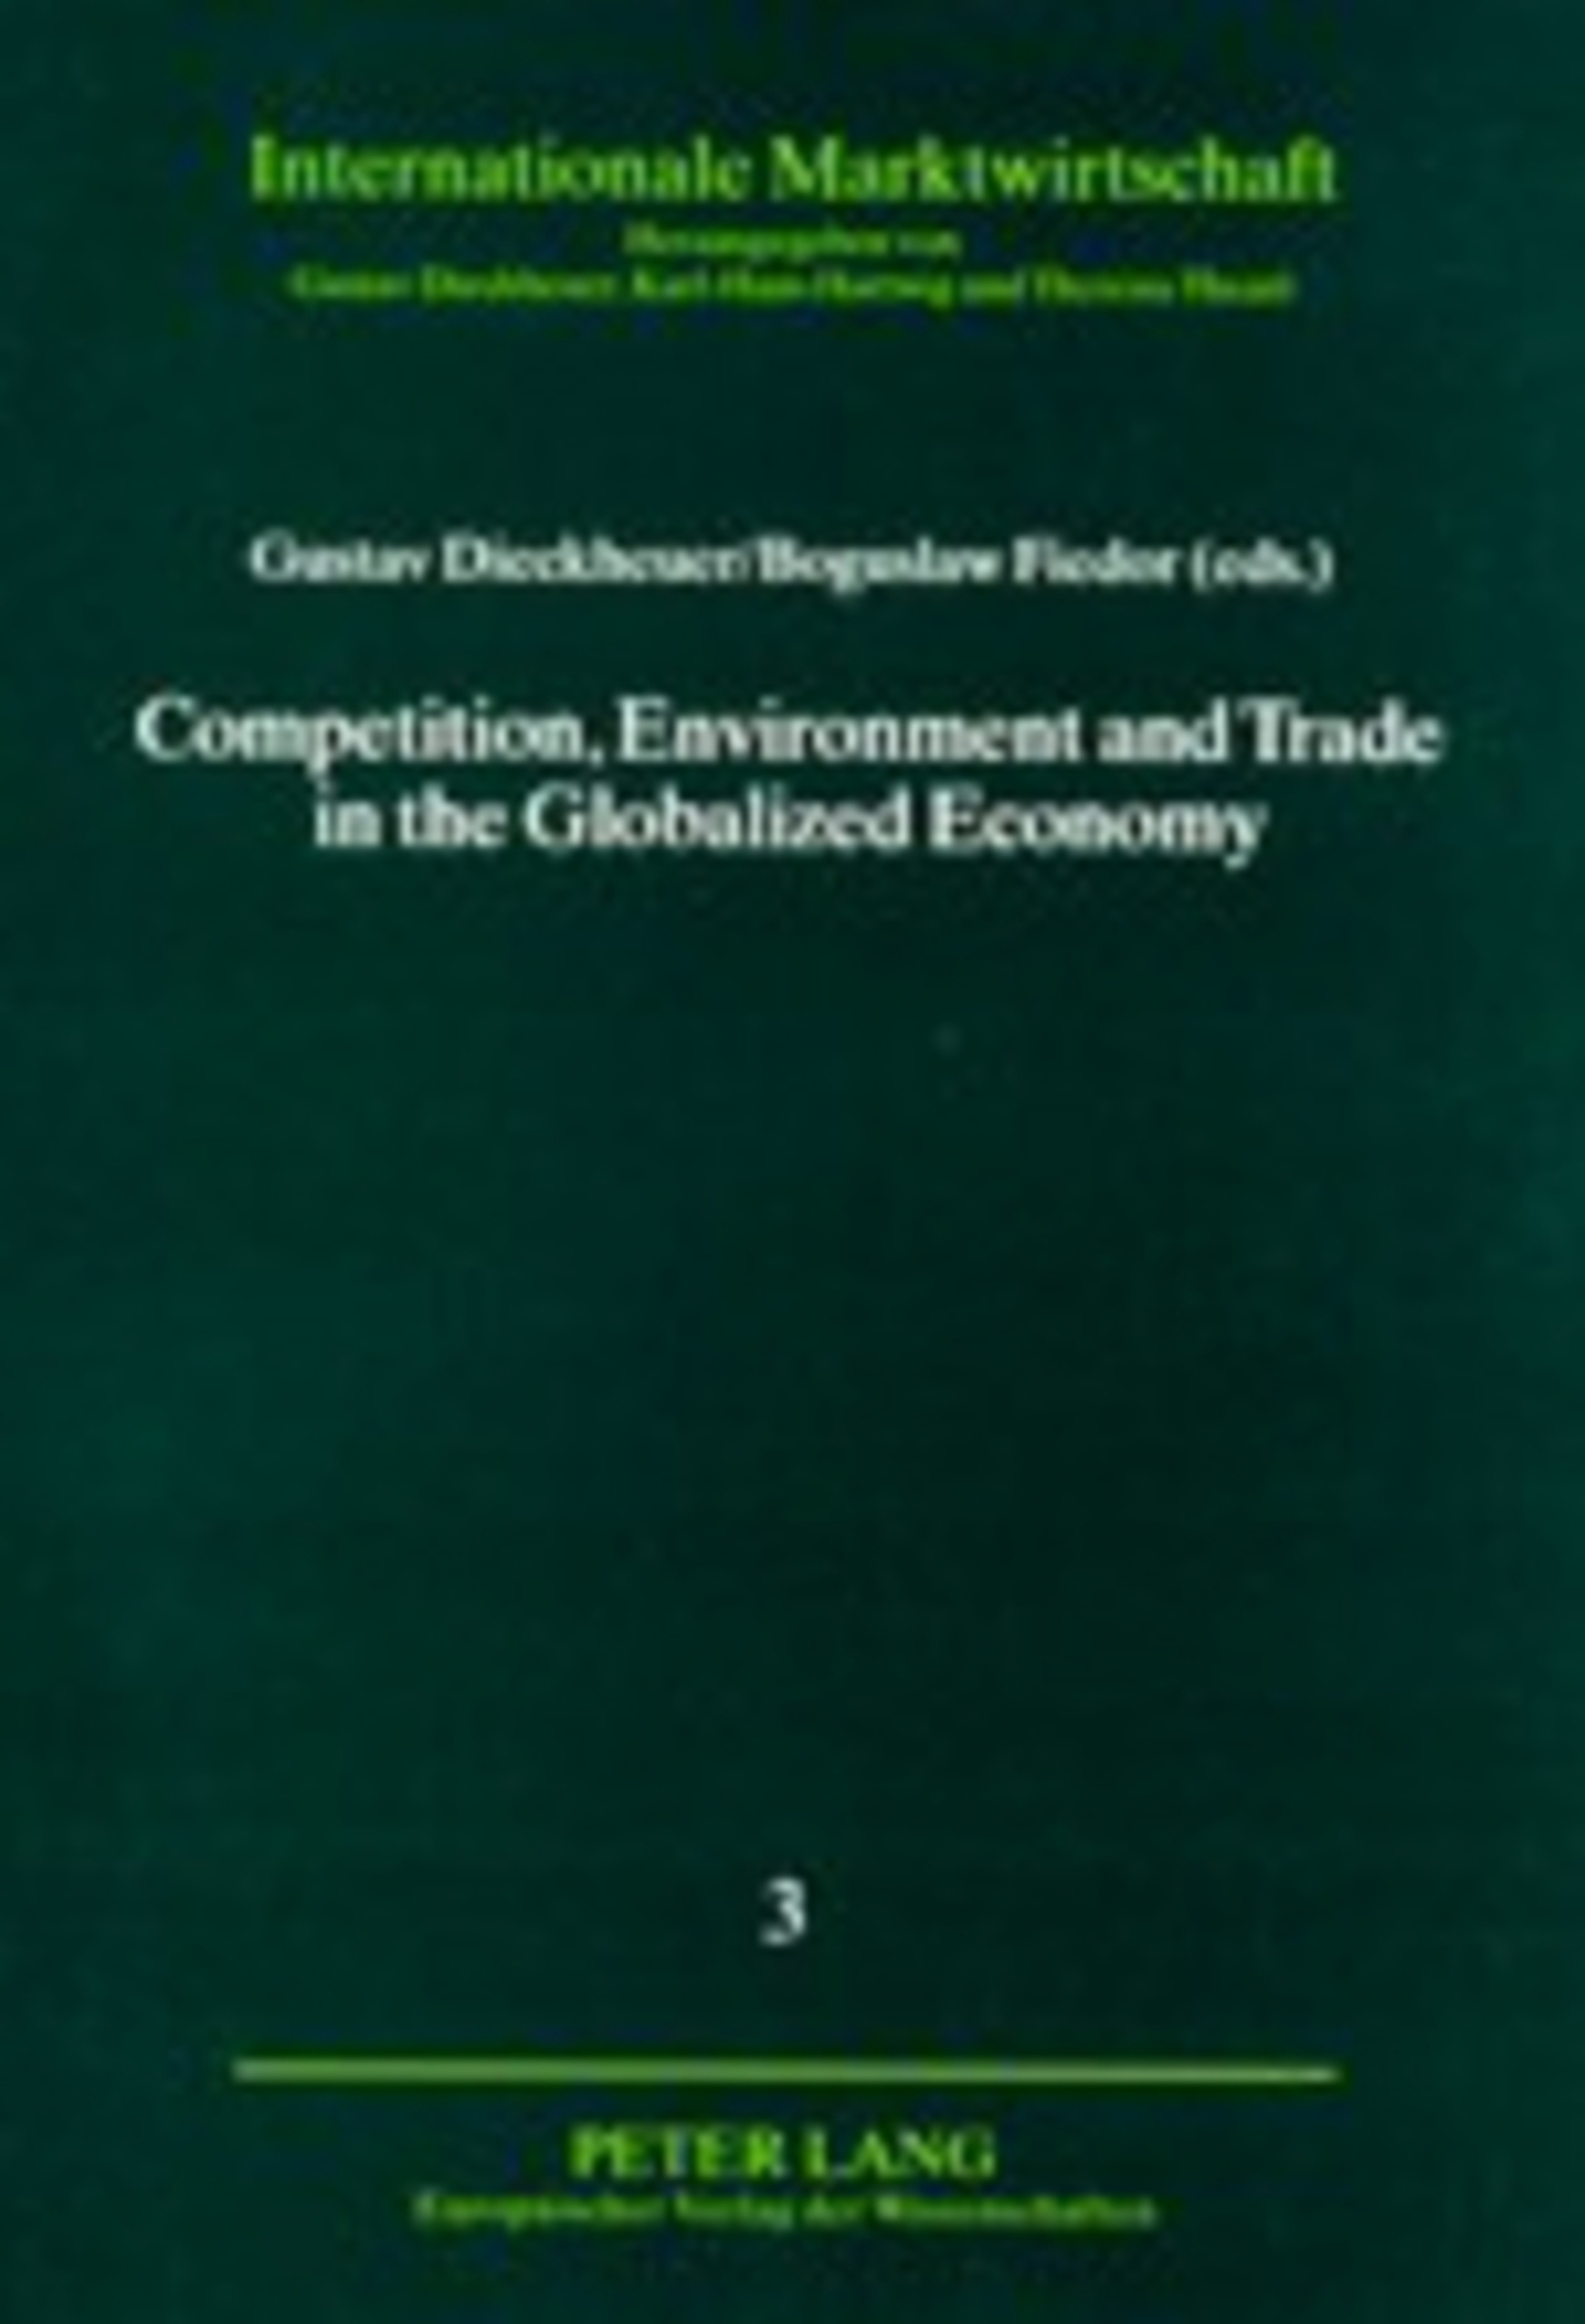 Title: Competition, Environment and Trade in the Globalized Economy